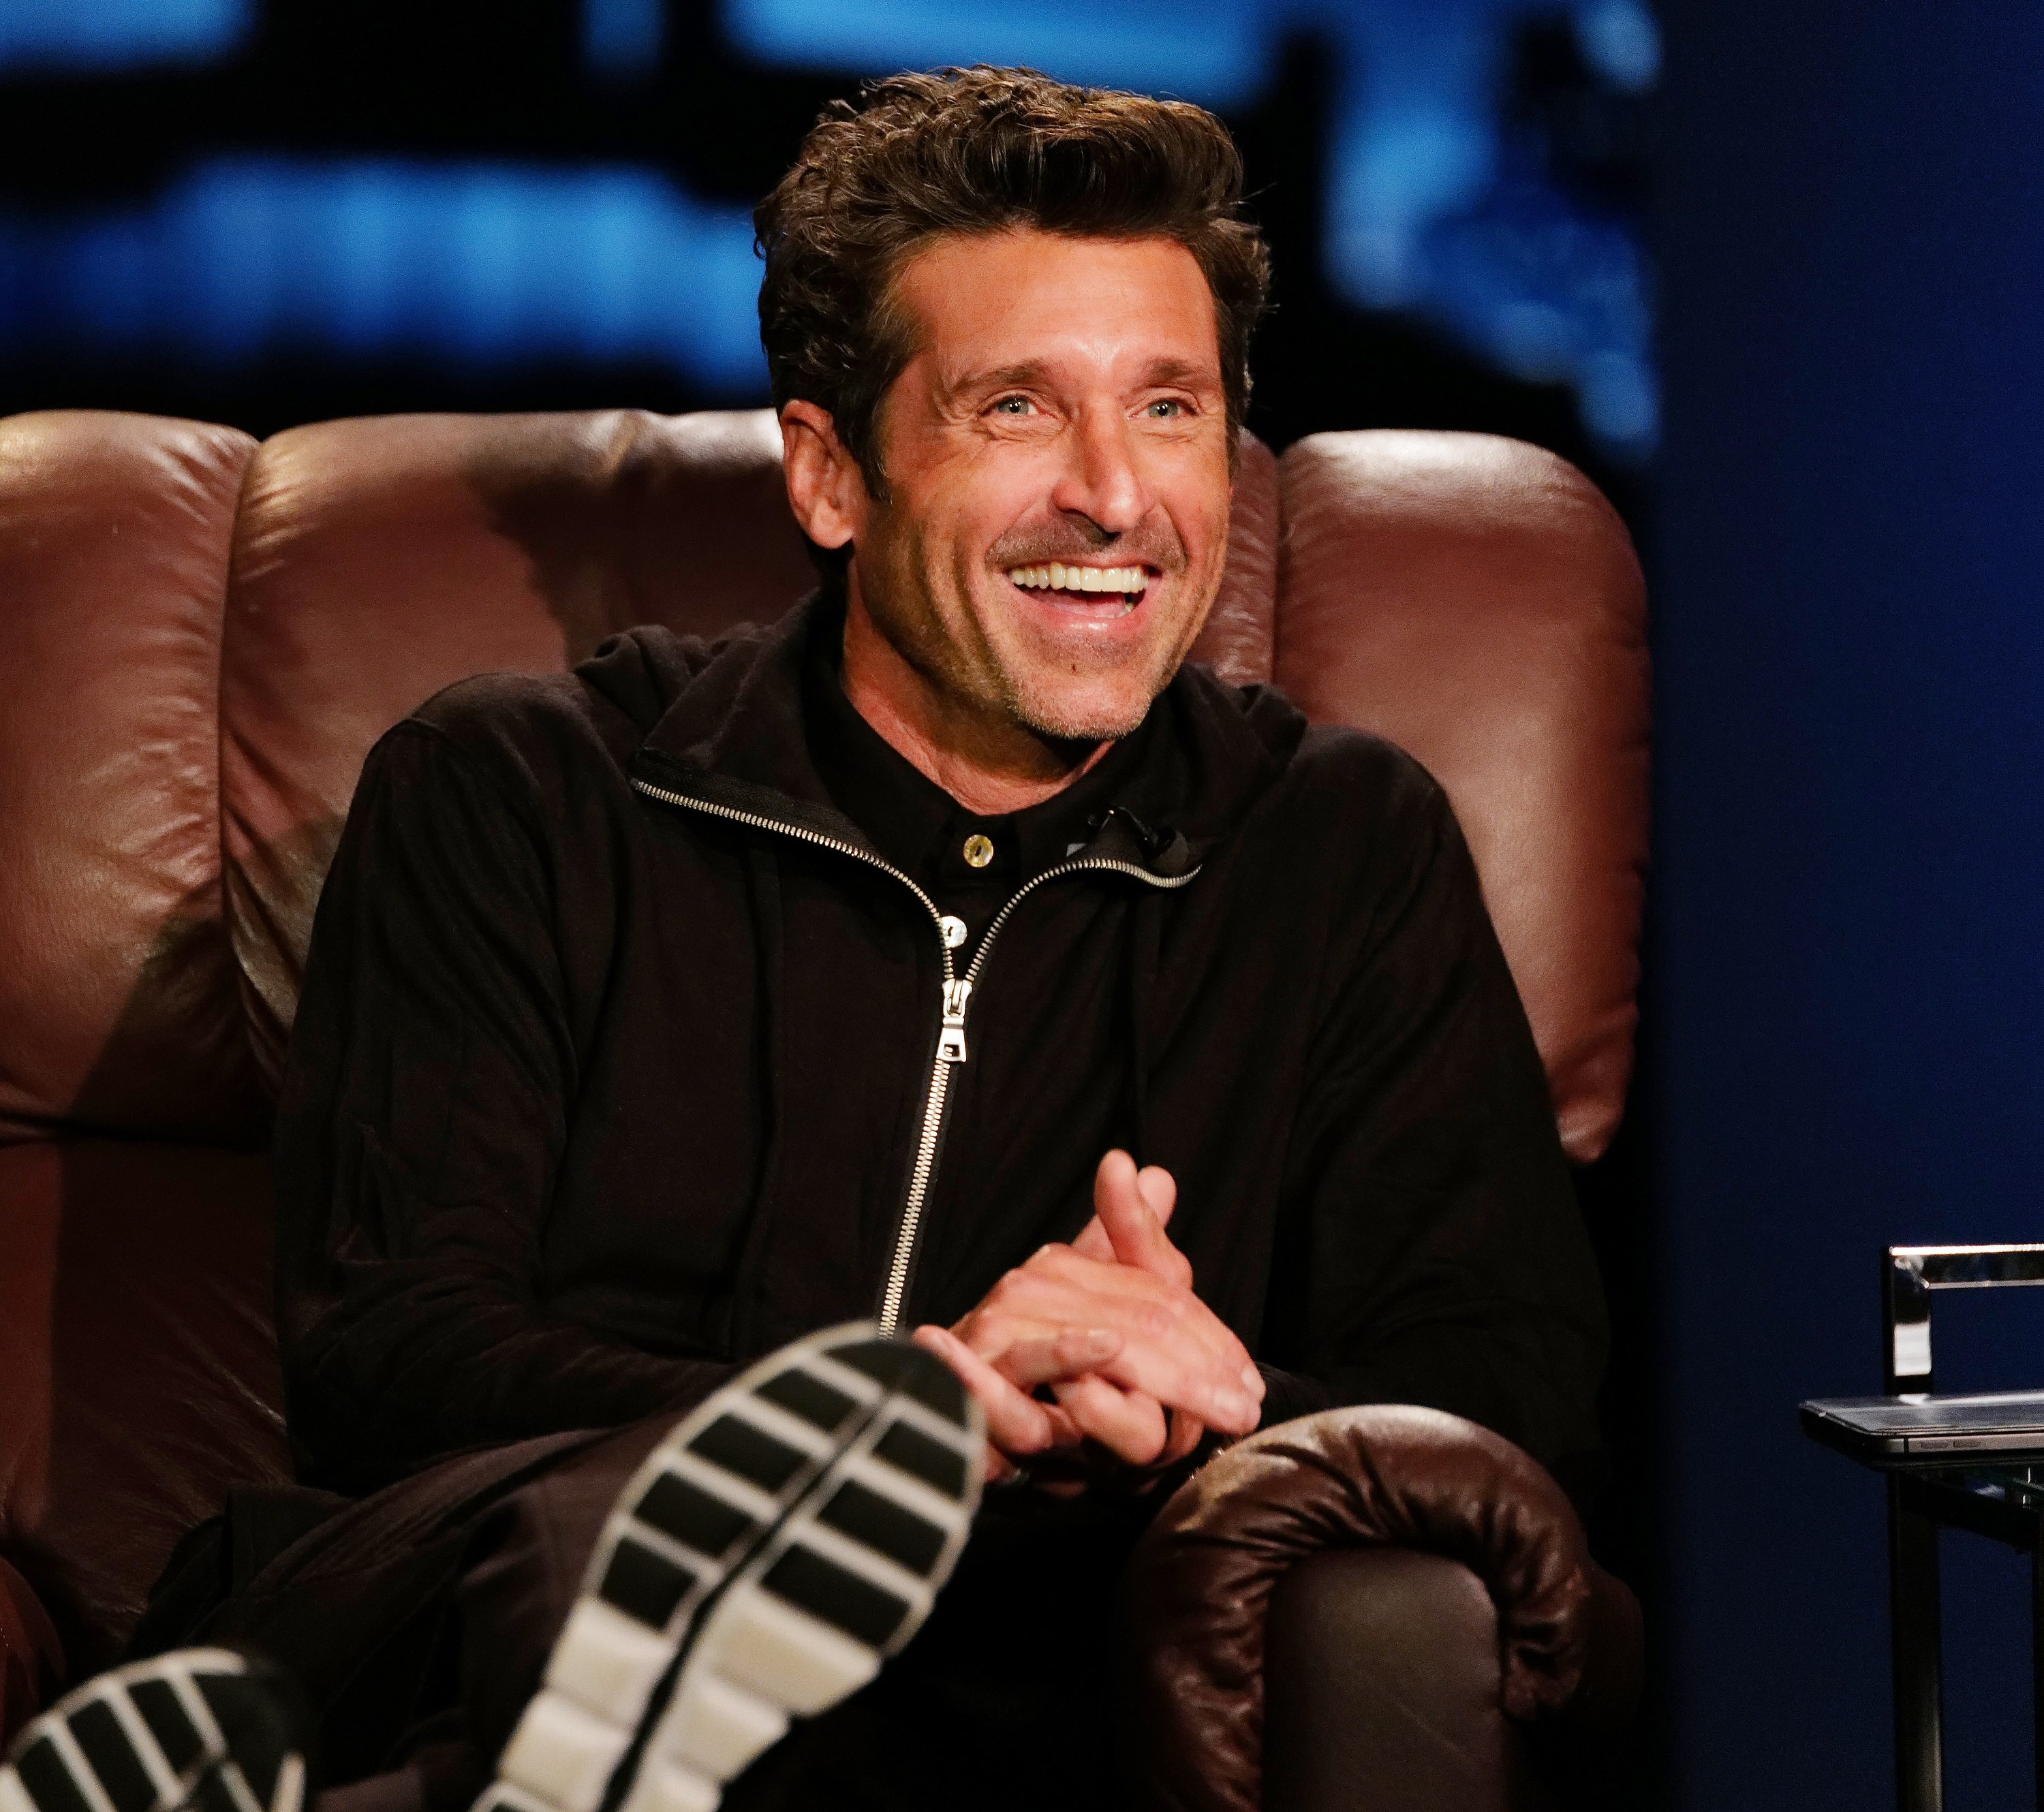 """Patrick Dempsey during an appearance on  """"Jimmy Kimmel Live!""""  Source 